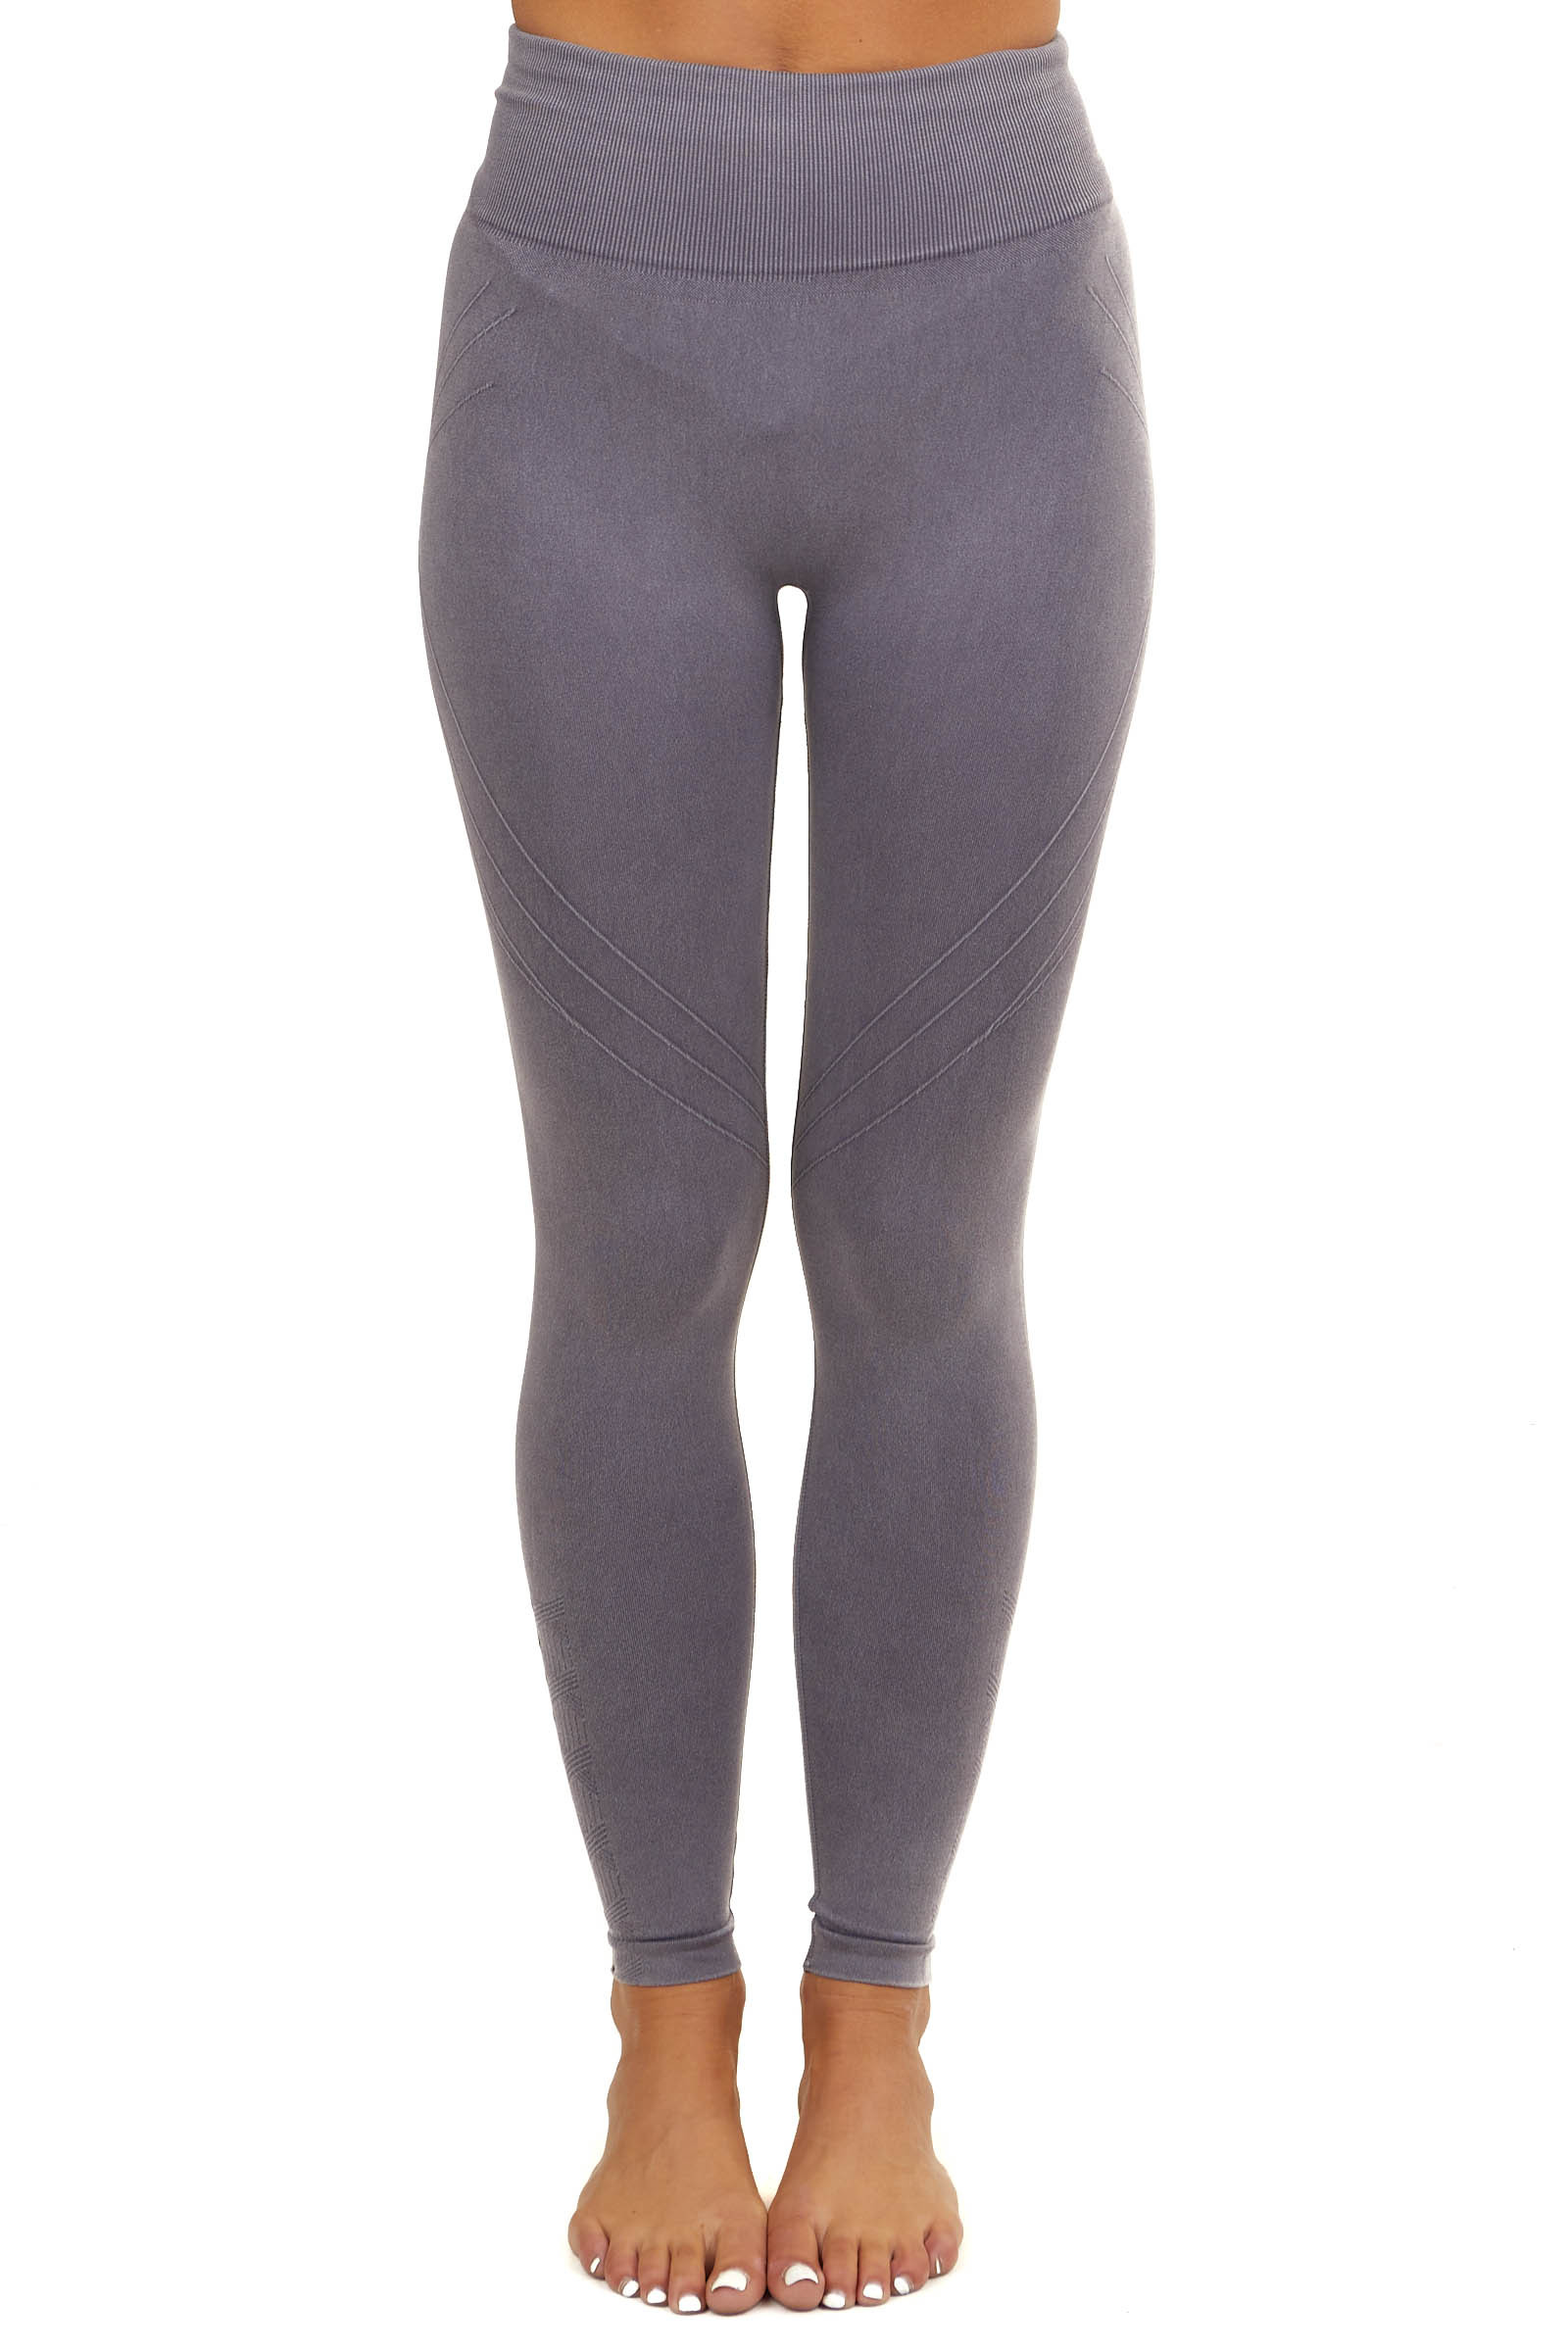 Dusty Purple Knit Leggings with Textured Line Detail